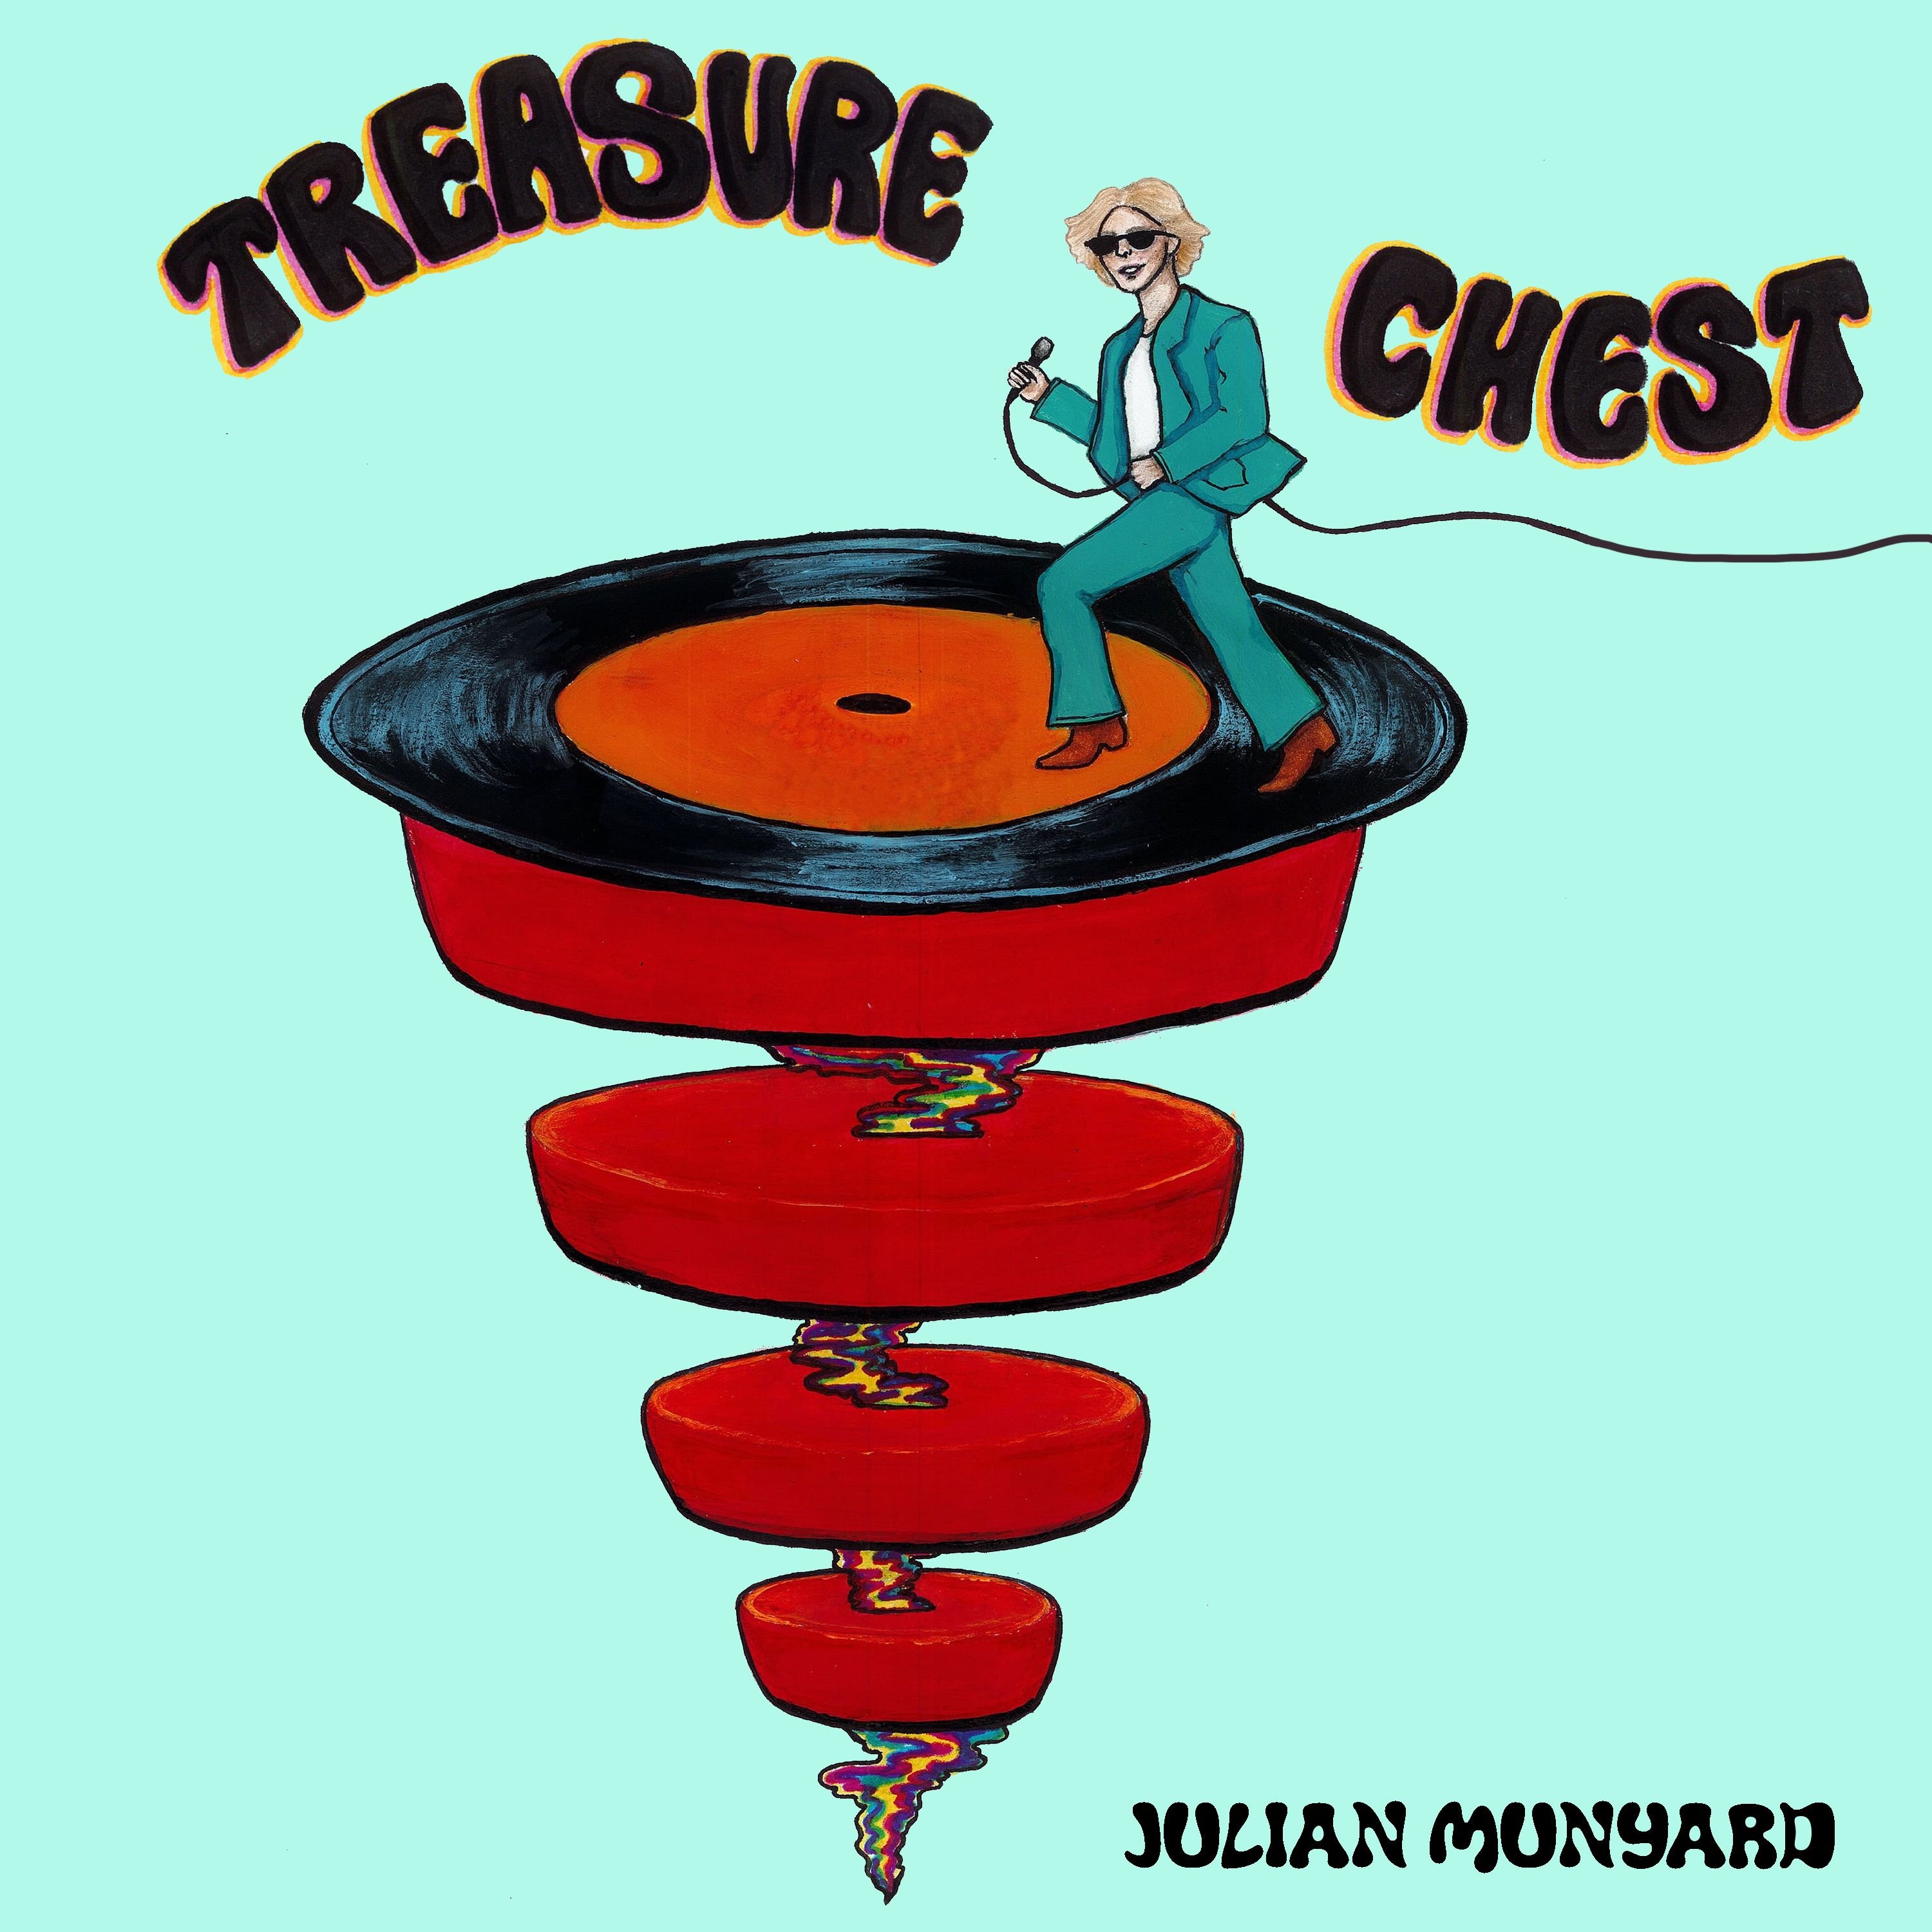 julian munyard treasure chest